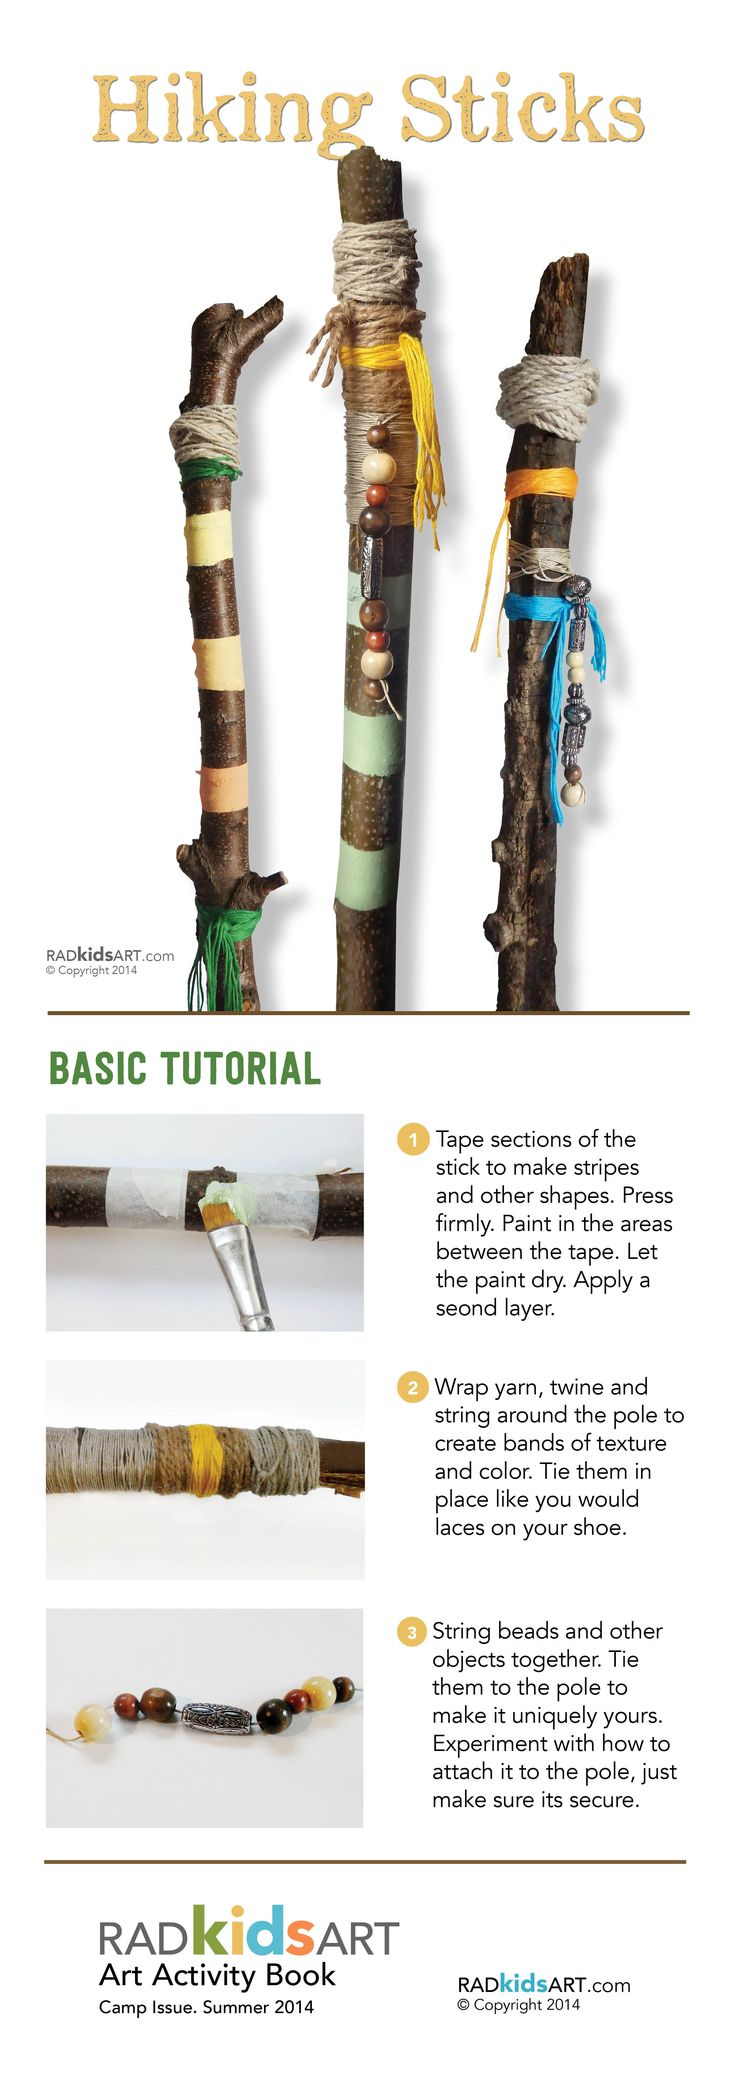 http://teds-woodworking.digimkts.com/ The wife will love this when I make it myself simple woodworking DIY Hiking Sticks